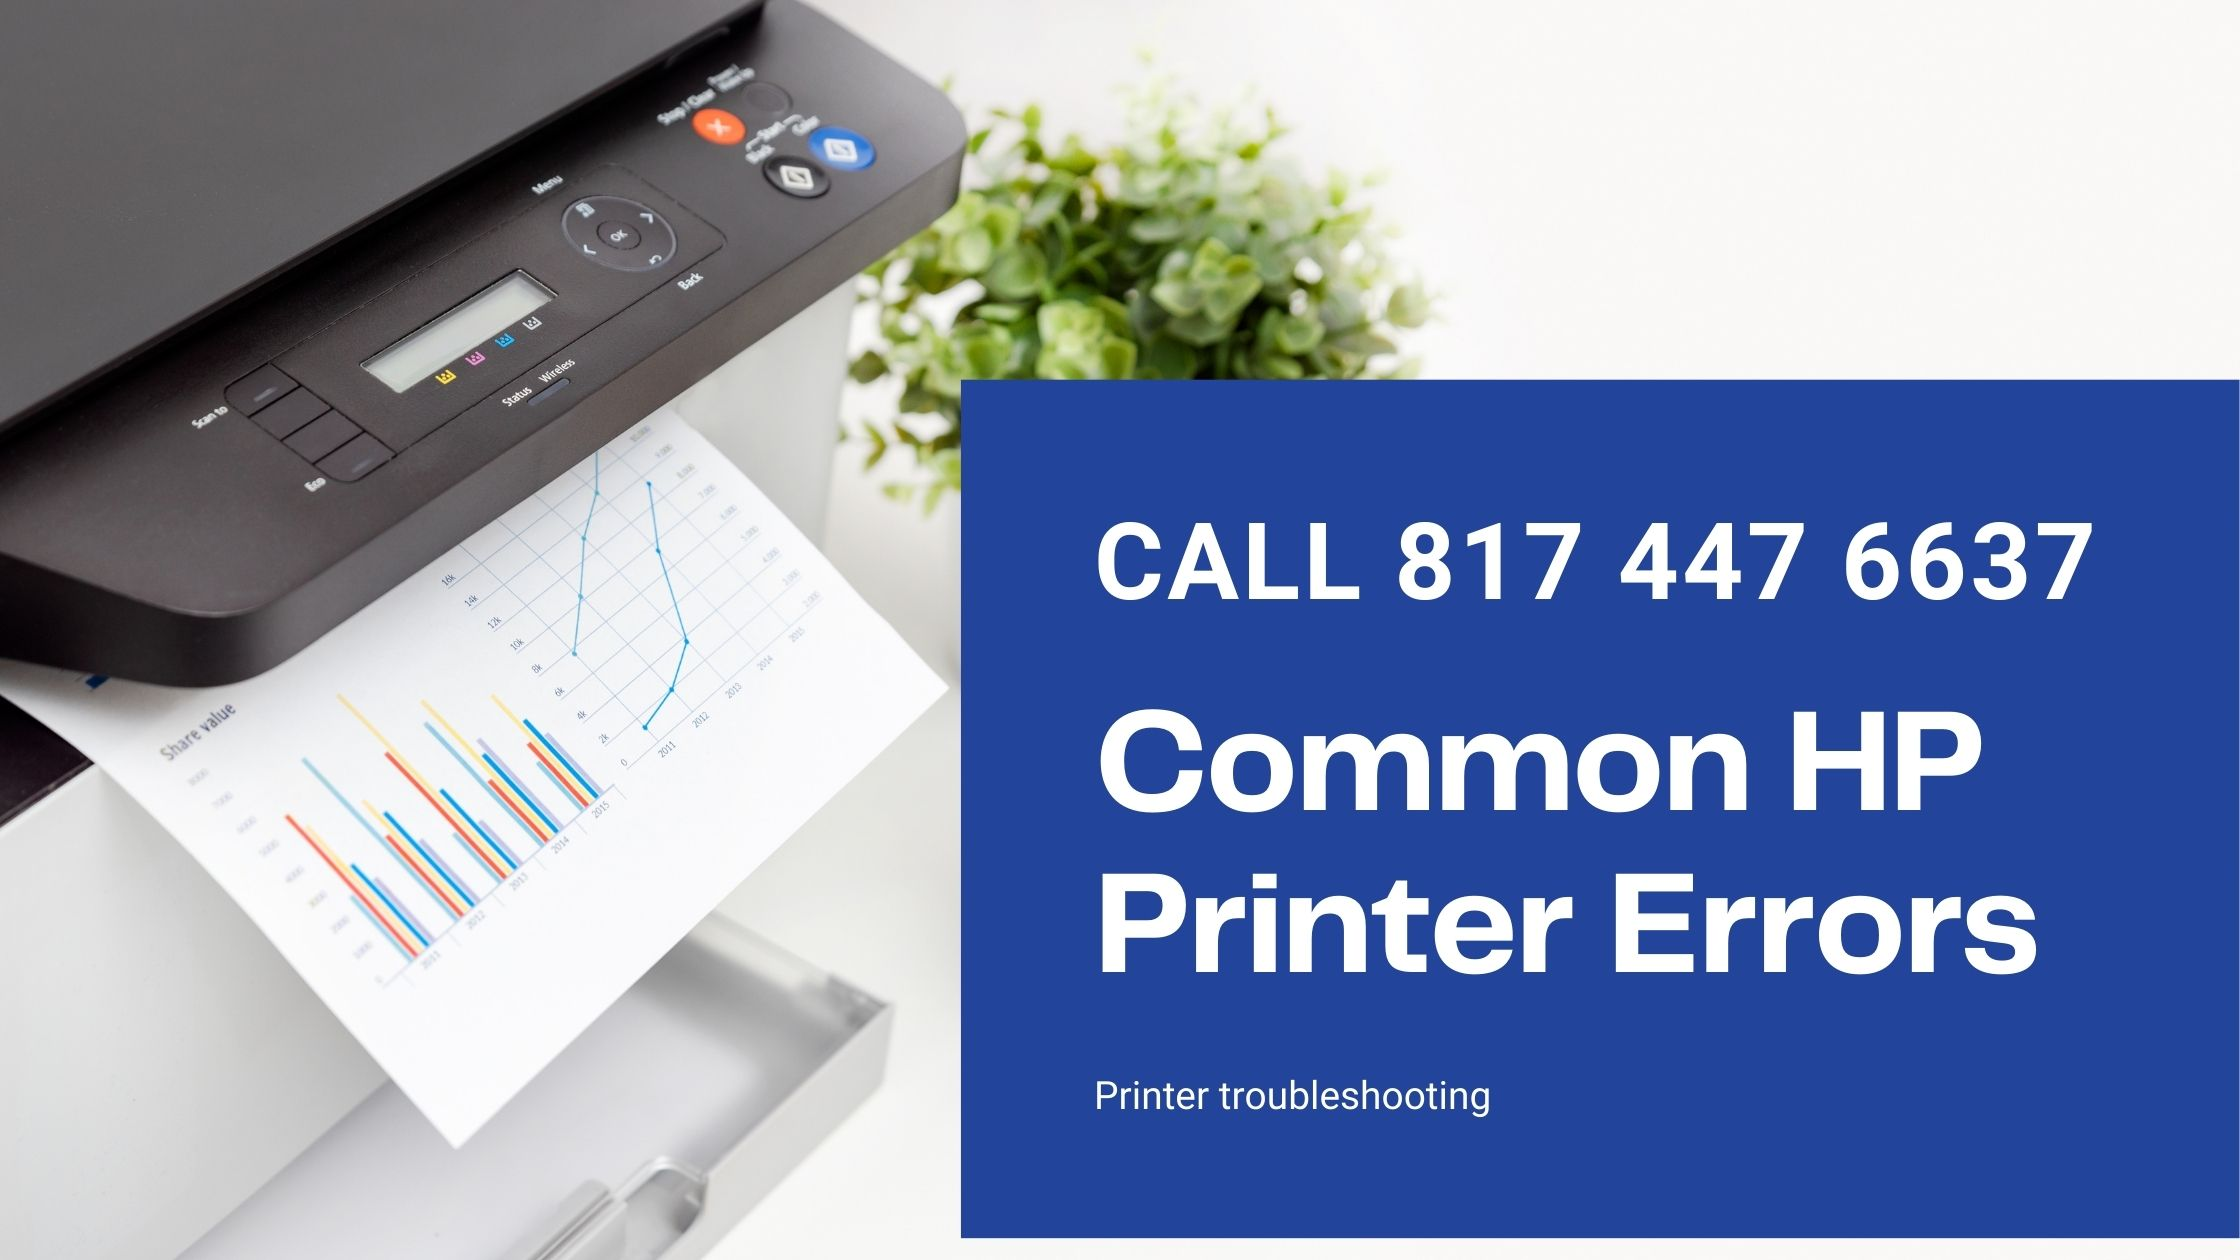 Some common HP printer errors and how to fix them